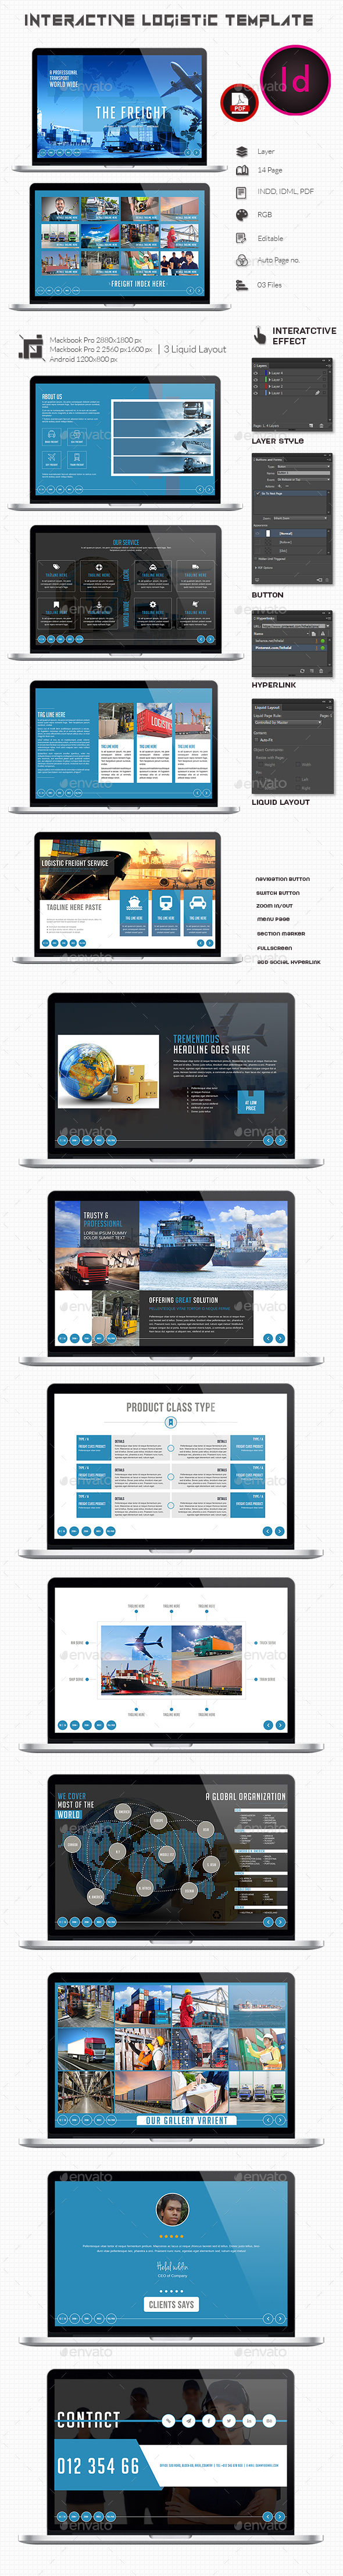 Interactive Logistic Template  - ePublishing